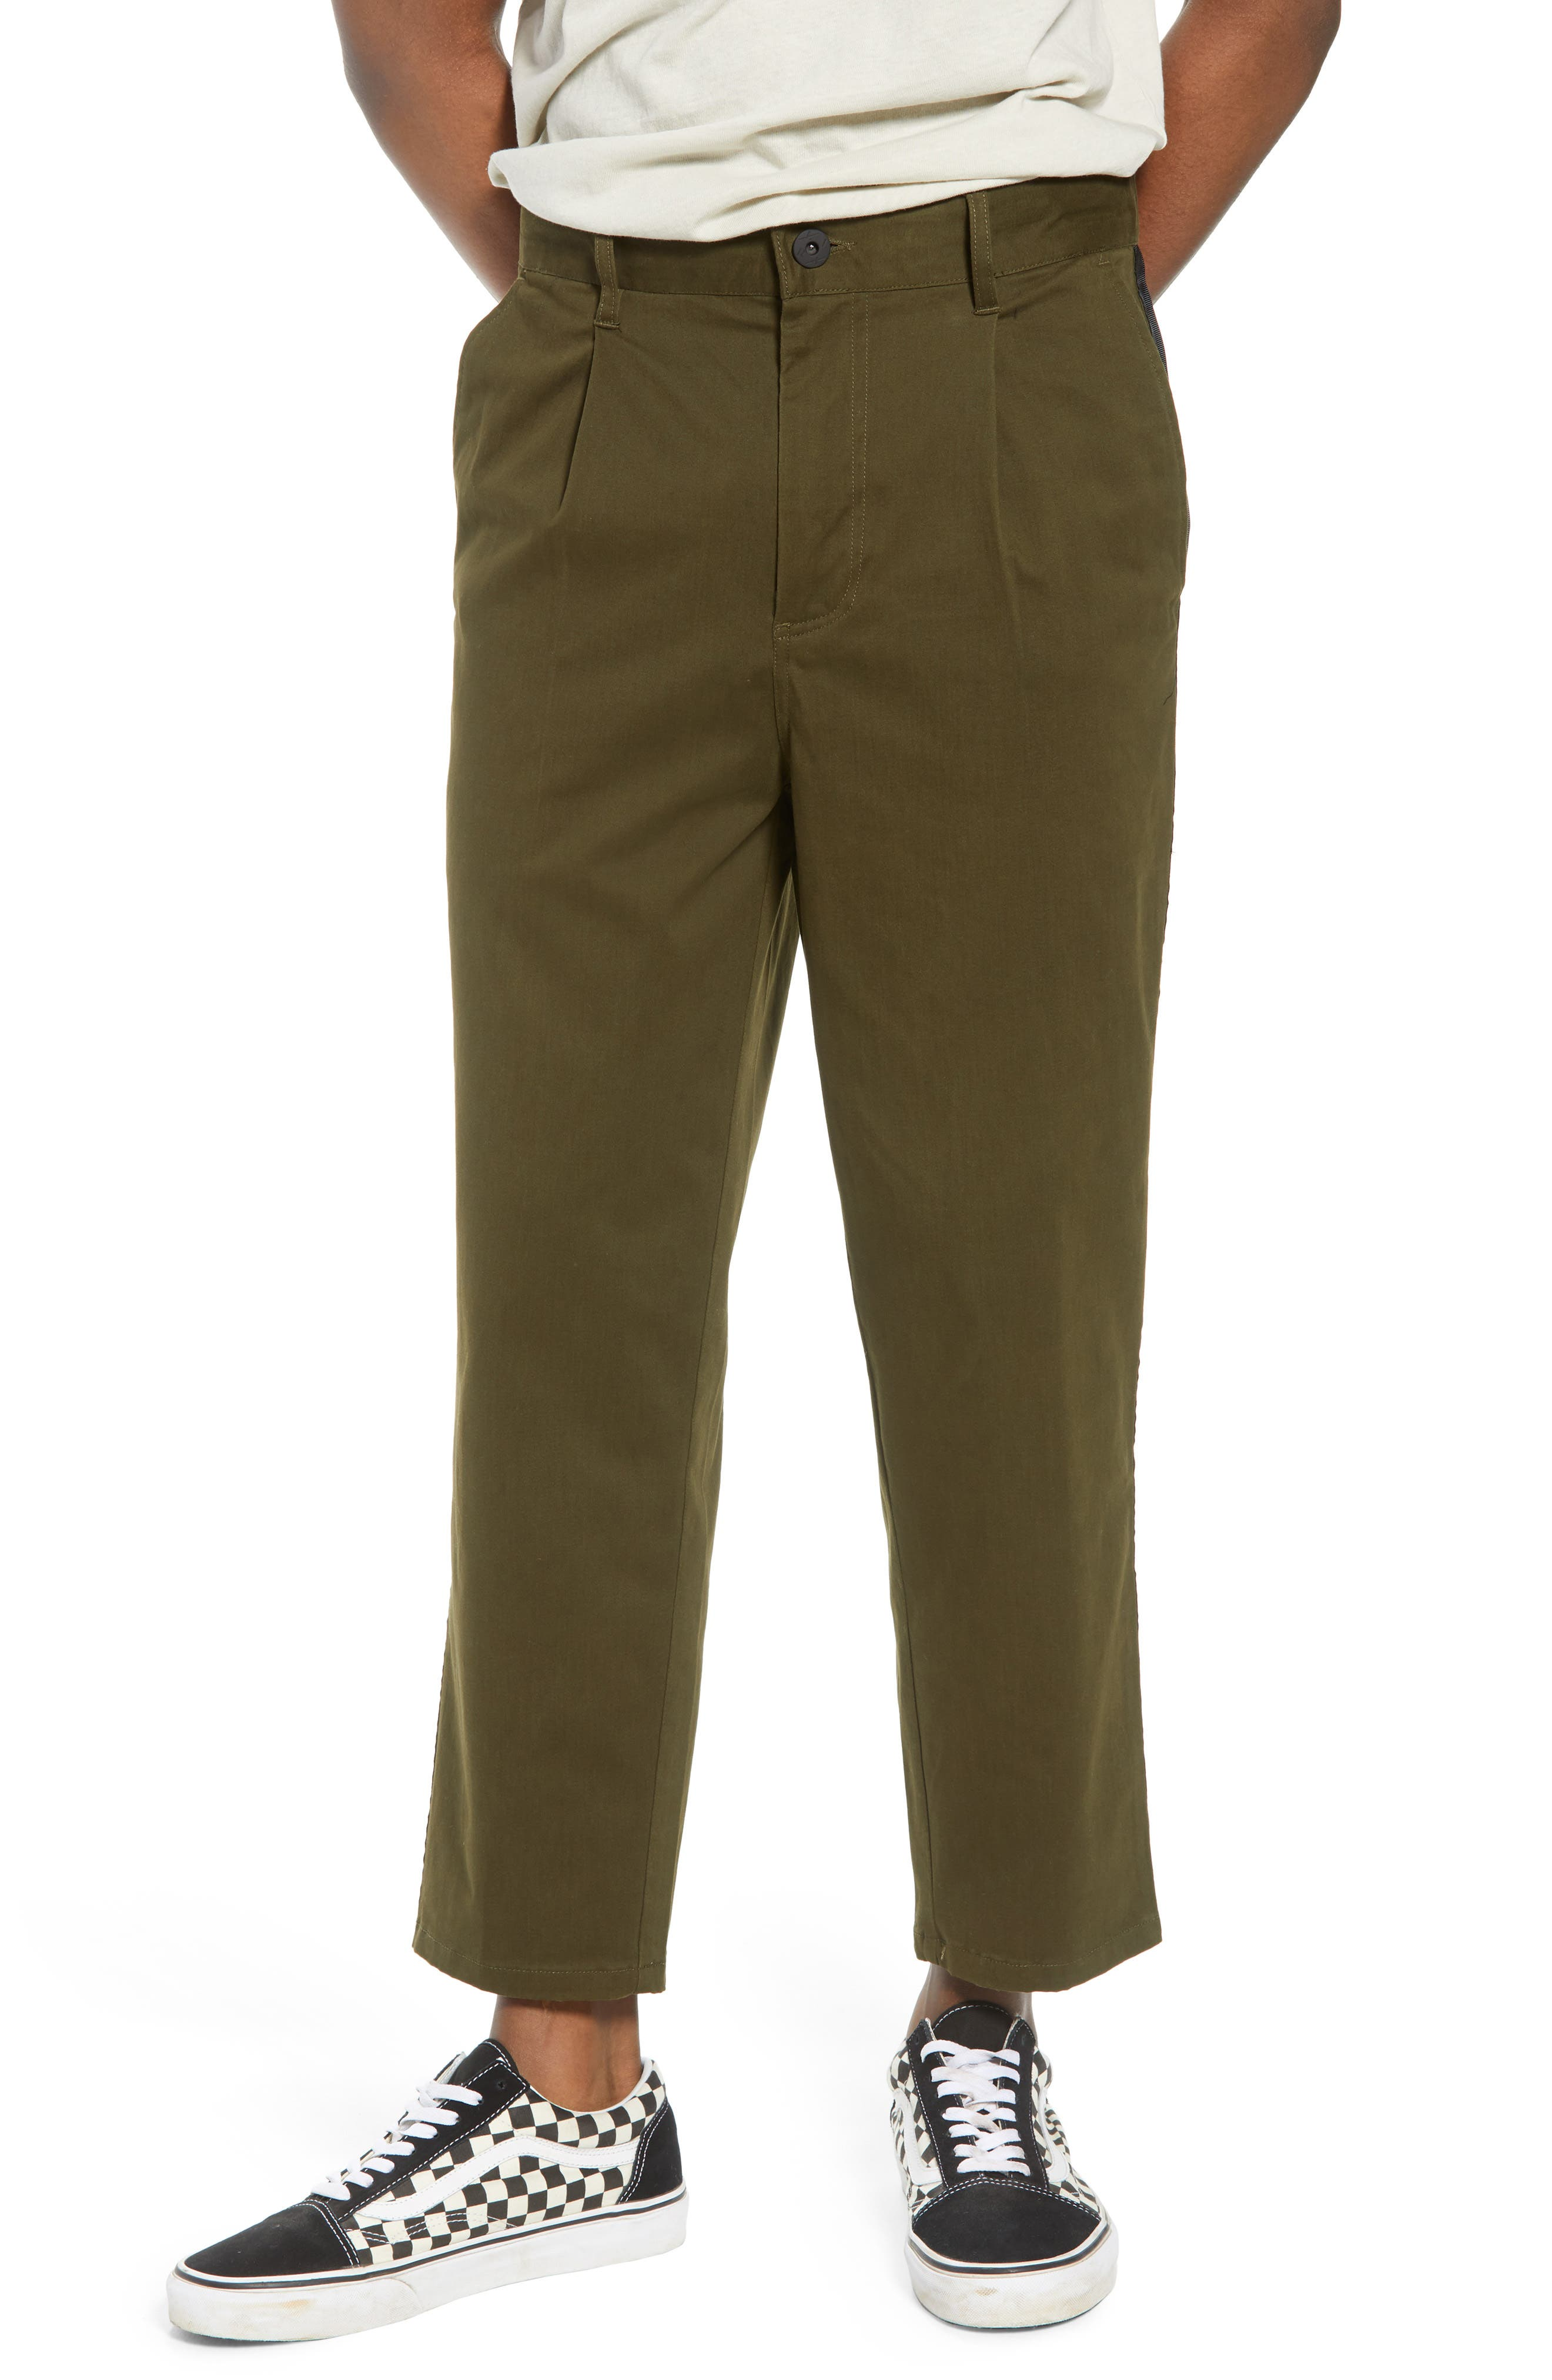 Lincoln Relaxed Fit Pants,                             Main thumbnail 1, color,                             Olive